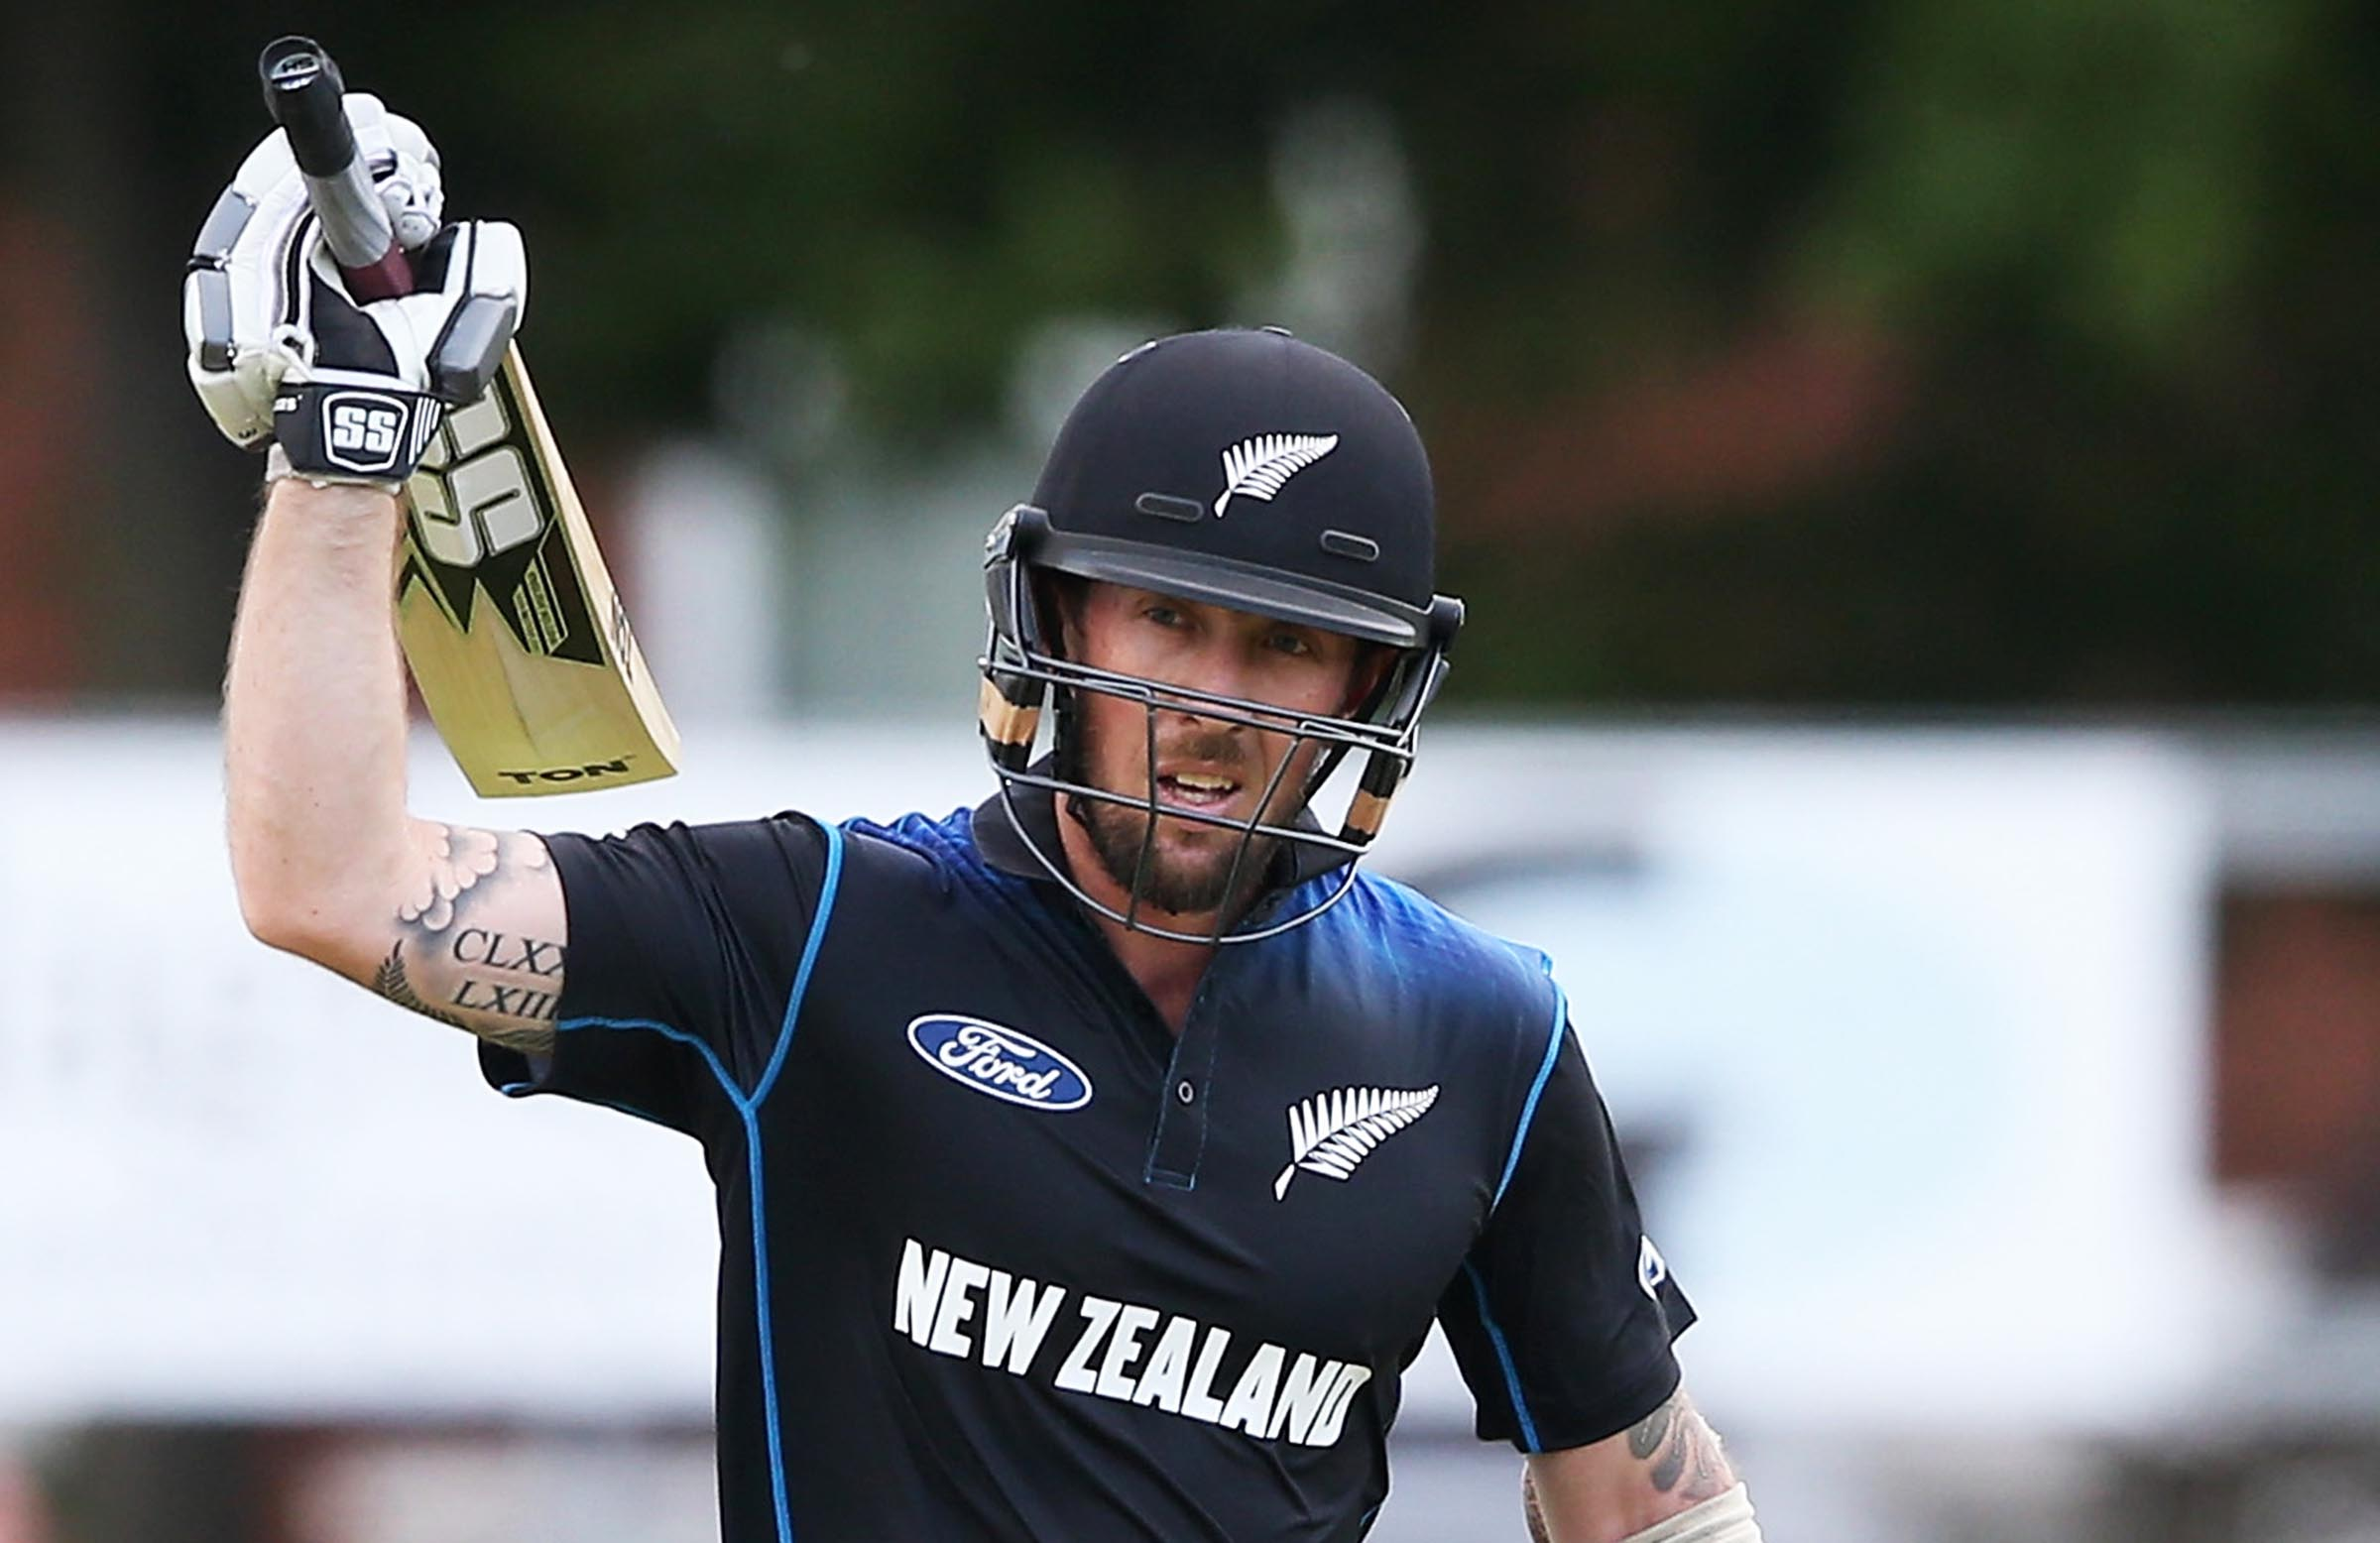 New Zealand's Luke Ronchi announces retirement from global cricket